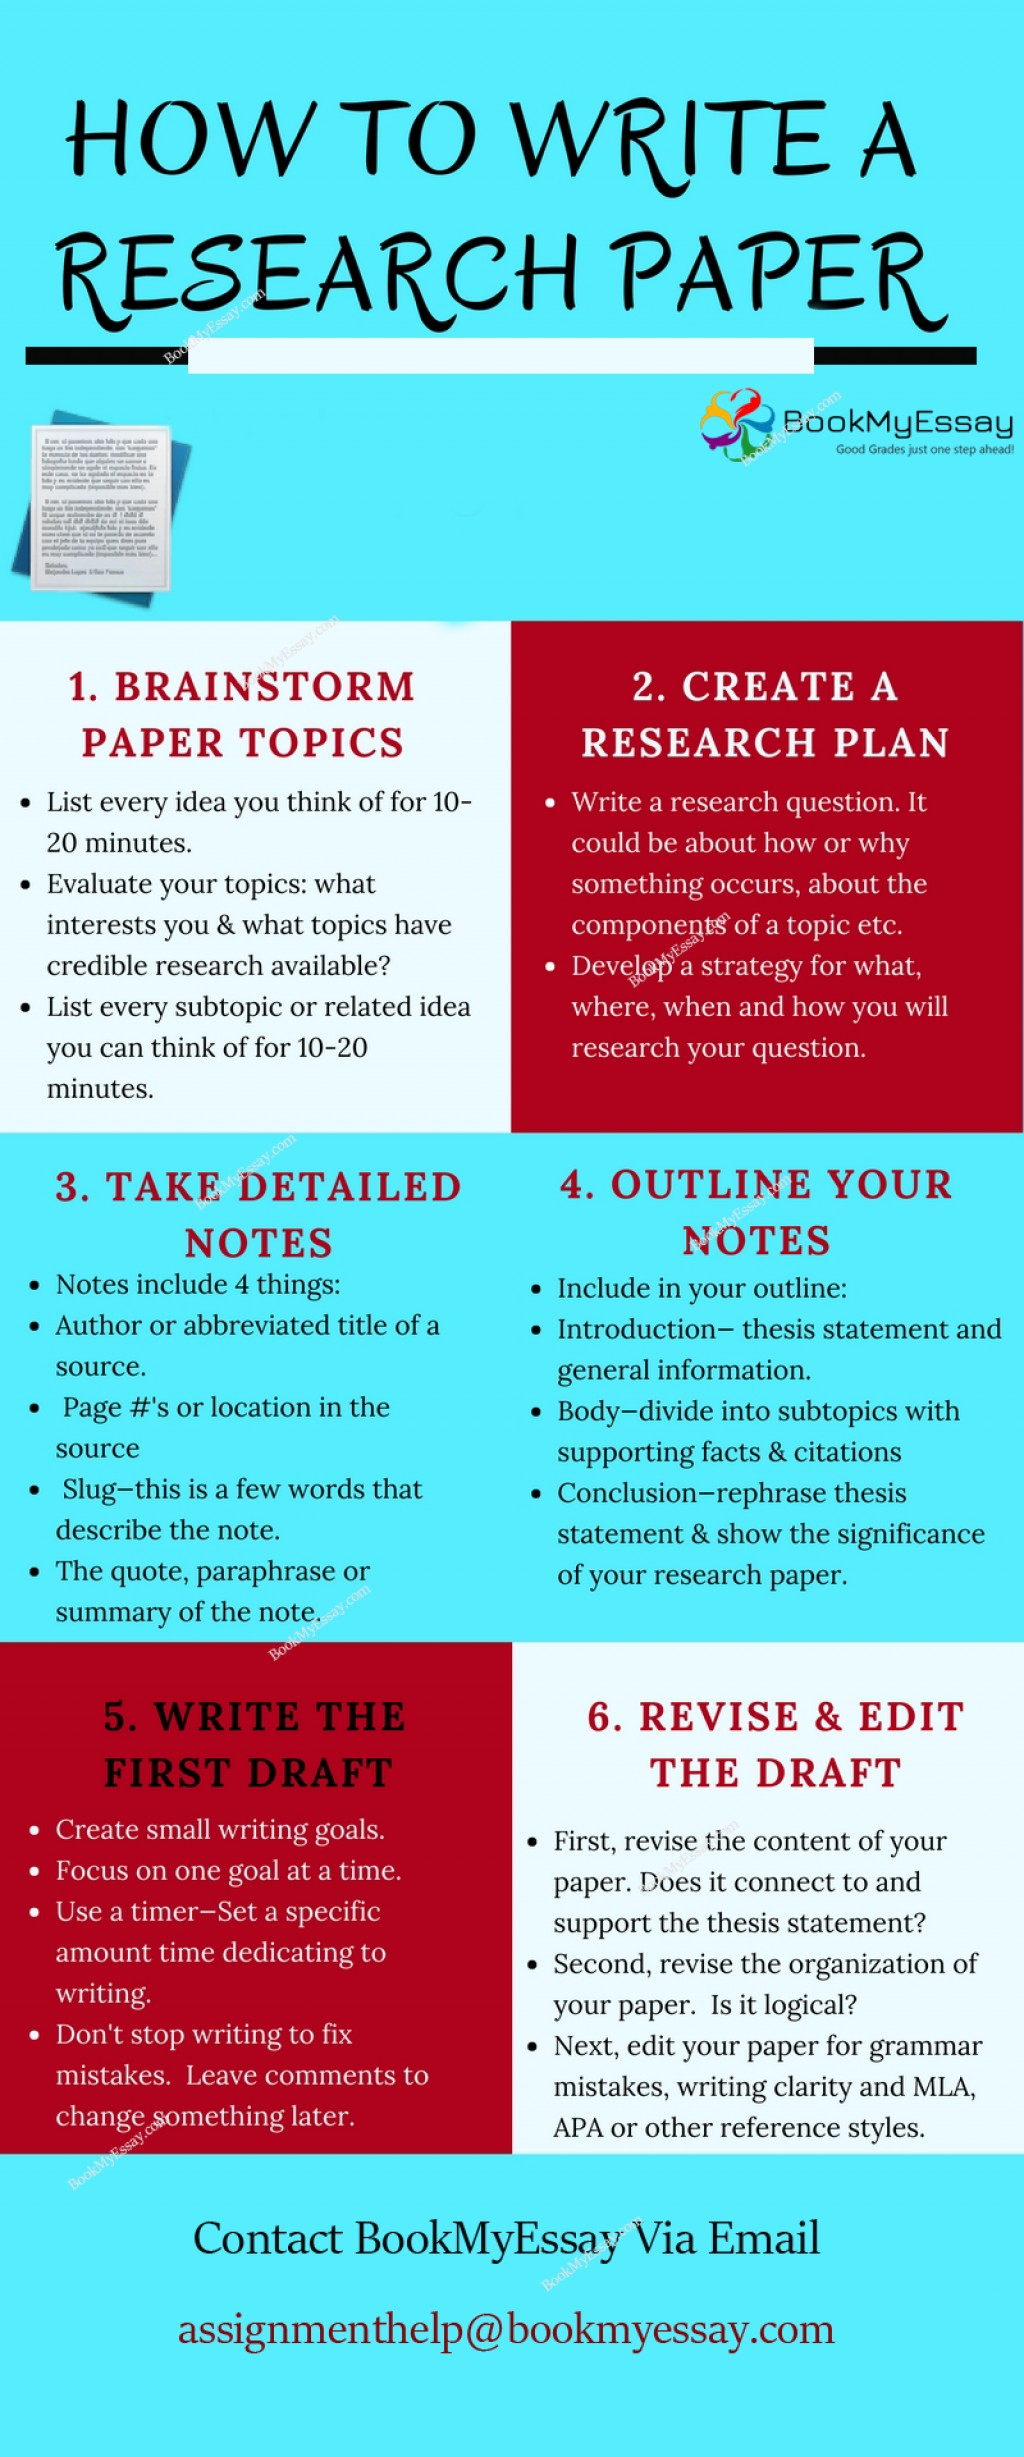 002 Researchs Writing Service Outstanding Research Papers Paper Services In Chennai Mumbai College Reviews Large